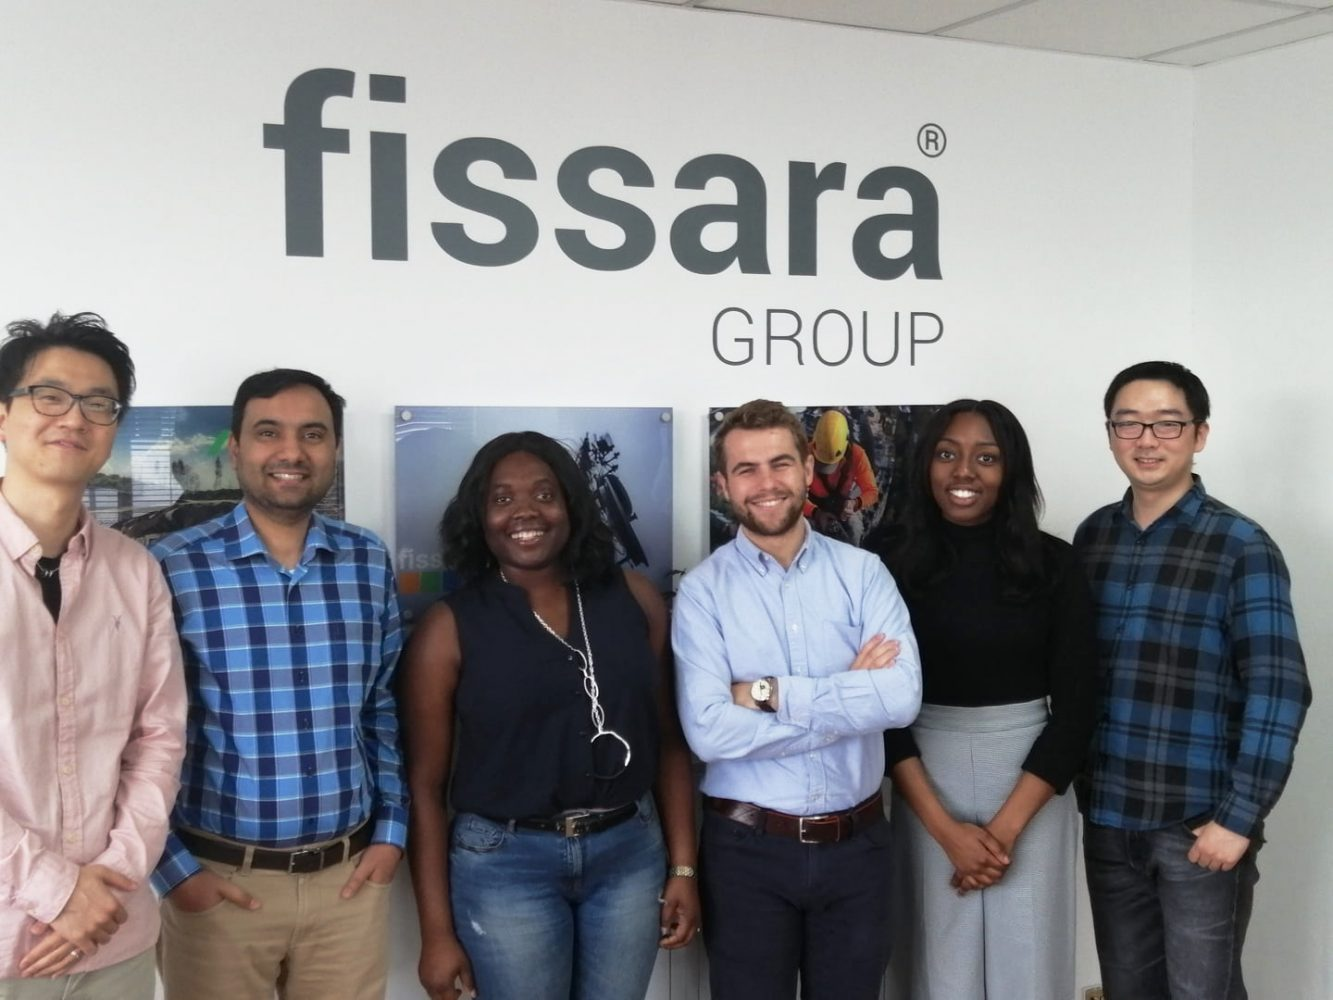 A group of employees stood in front of a Fissara group branded wall